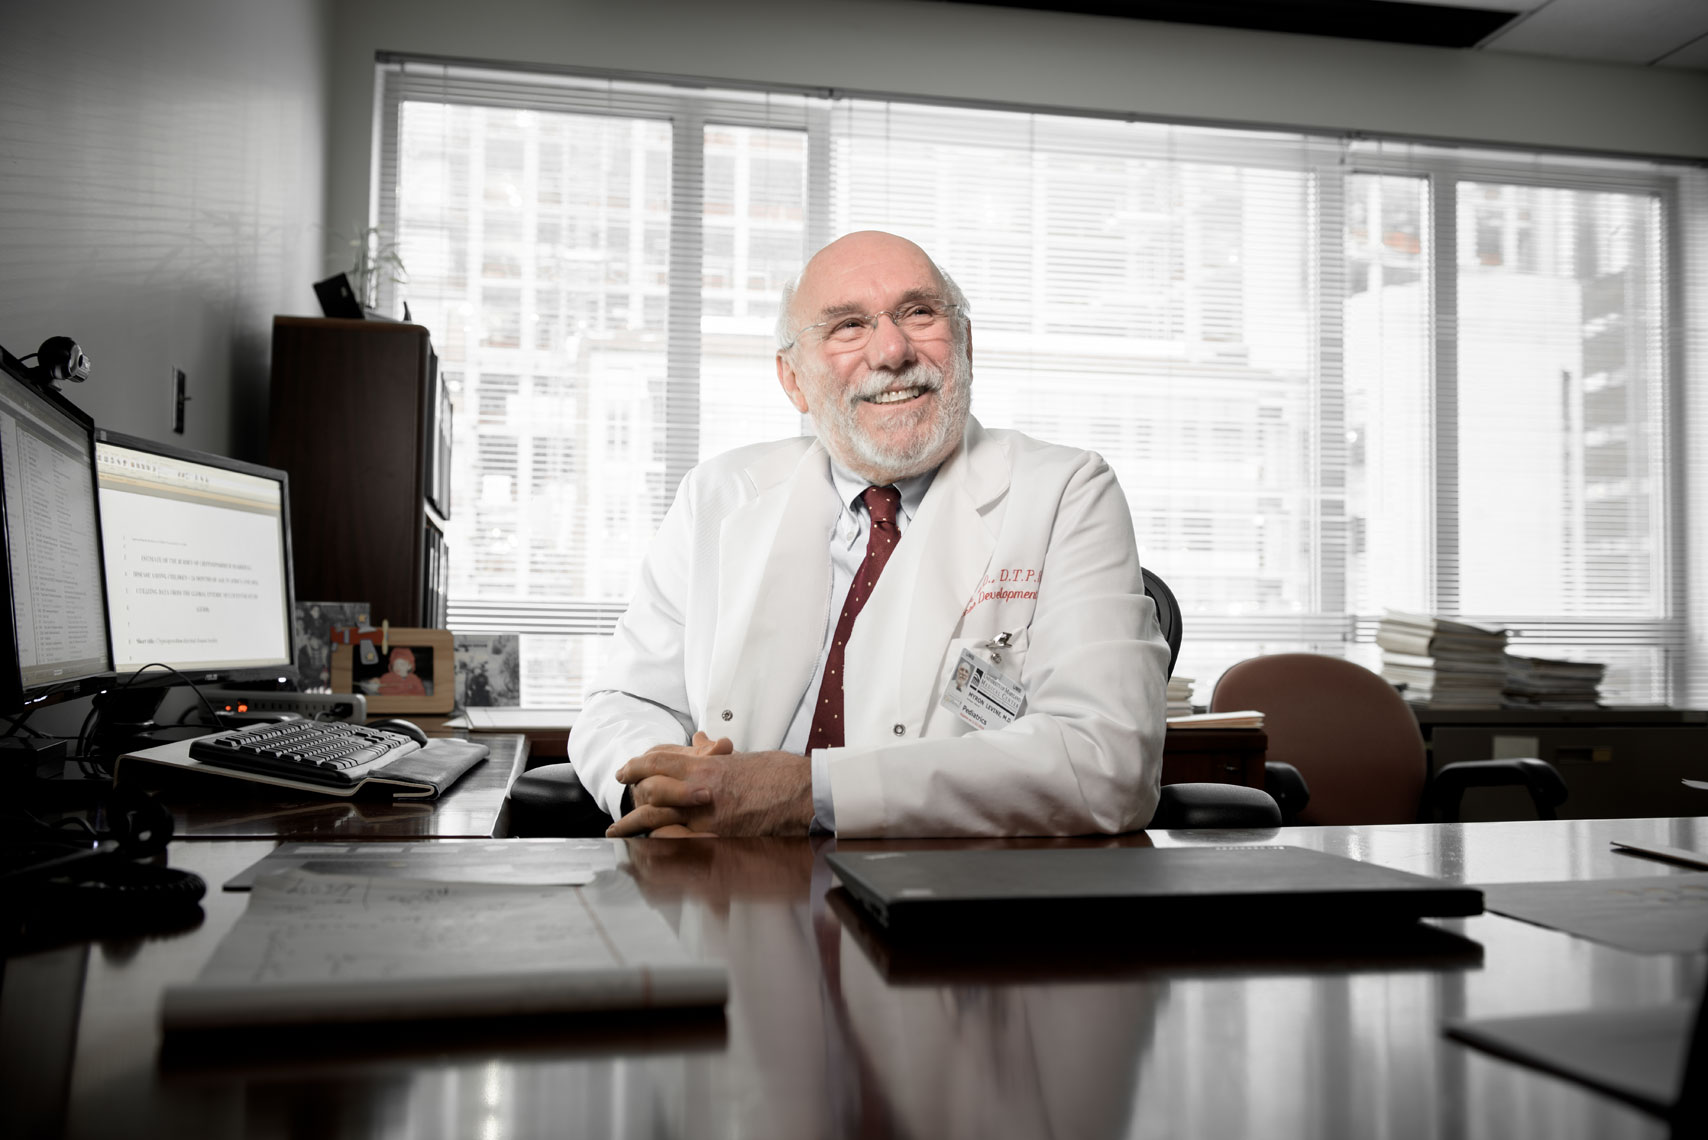 Dr. Myron Levine, healthcare photography by Mike Morgan